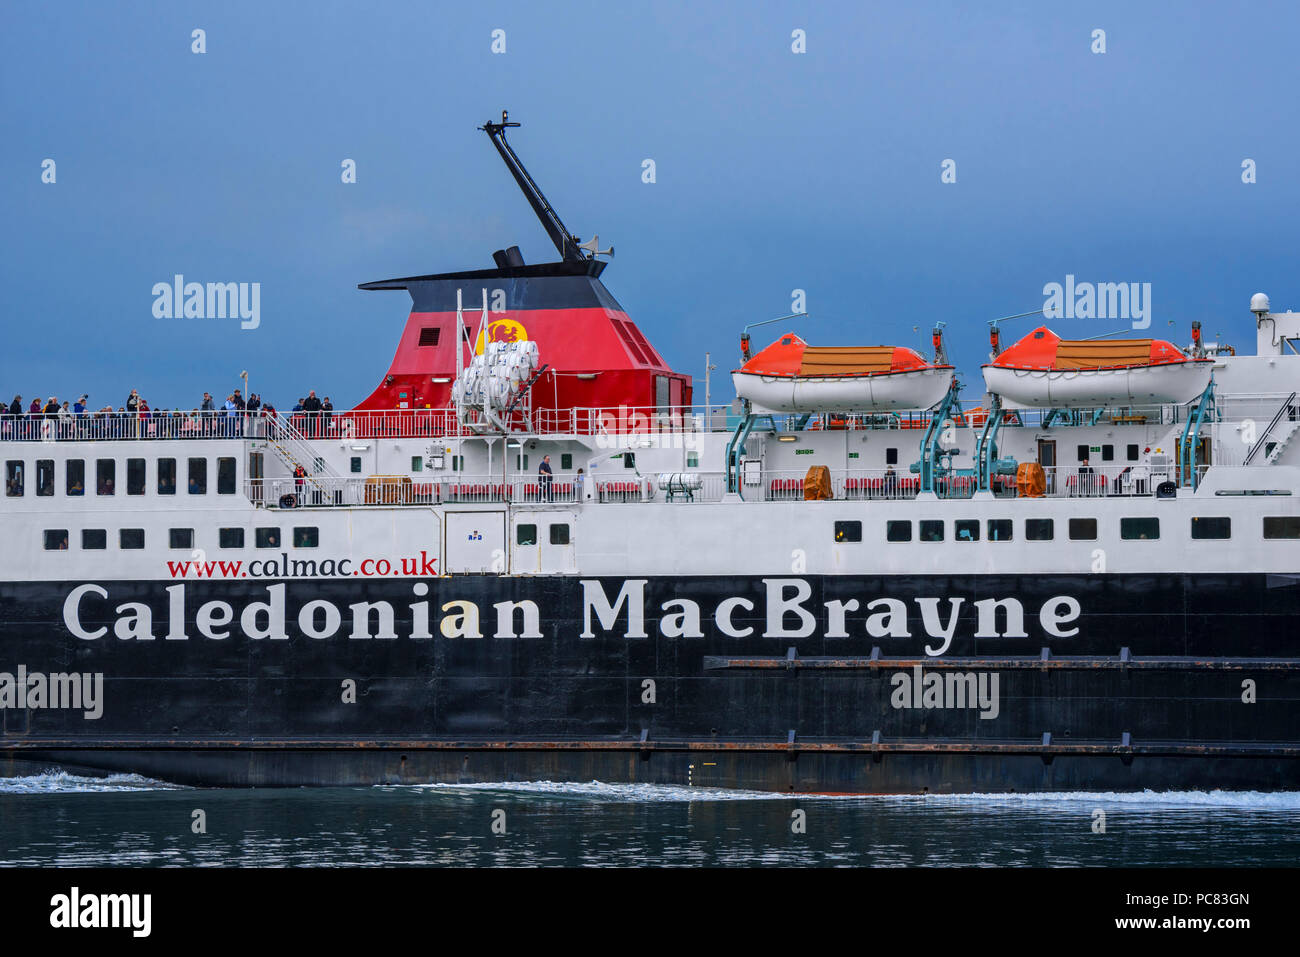 Passengers on deck of the Caledonian MacBrayne ferry boat Isle of Mull / An t-Eilean Muileach leaving the port of Oban Stock Photo